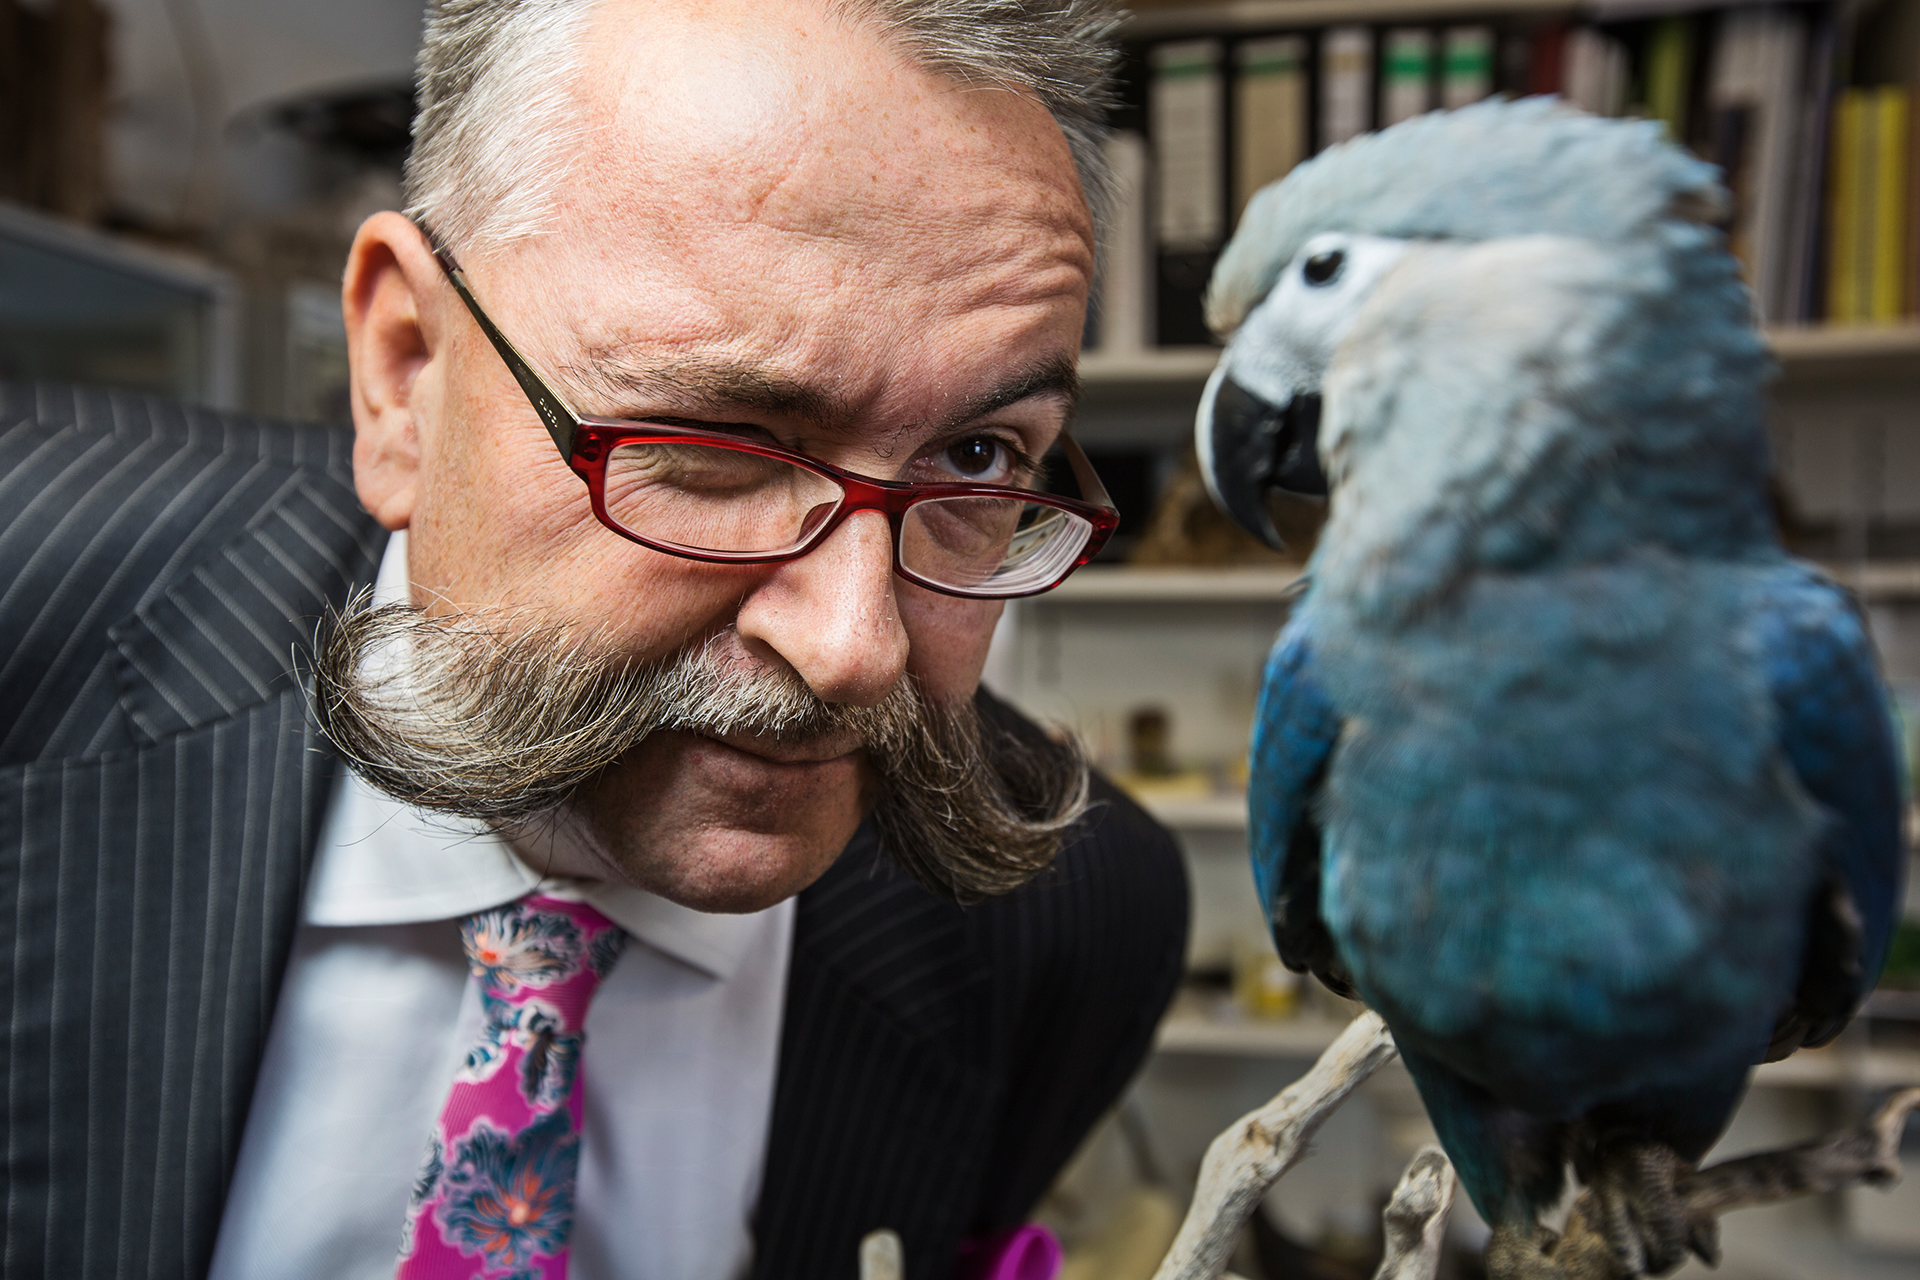 Museum Director Prof. Johannes Vogel inspects a Spix Ara, a species of macaws believed to be extinct in the wild.  Berlin, Germany.